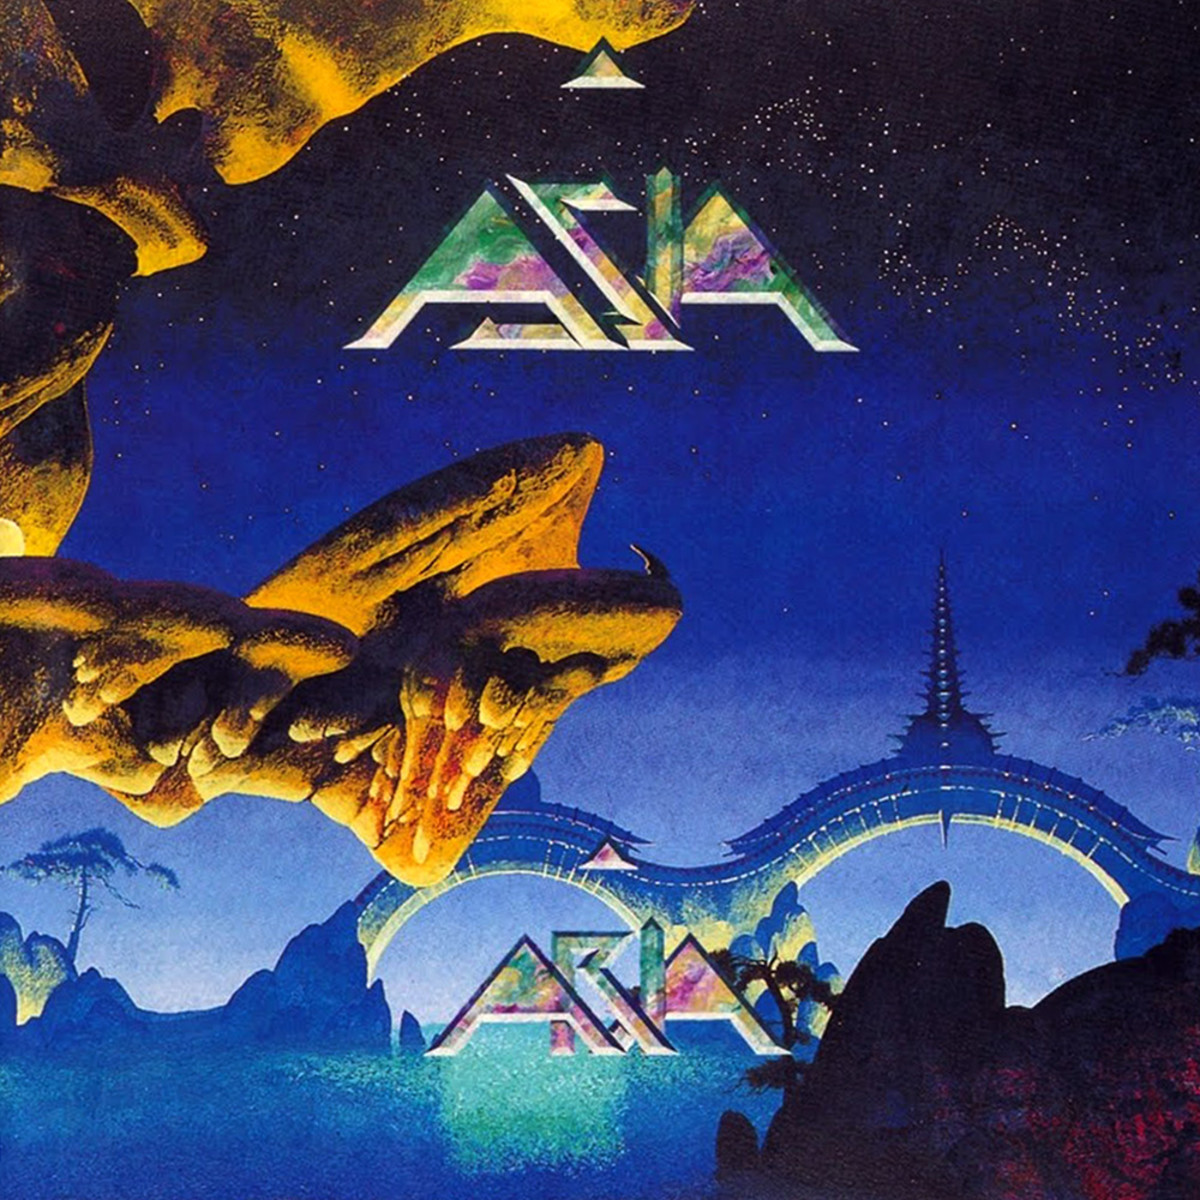 "Asia ""Aria"" IRS Records IRS 951.988 12"" LP Vinyl Record, Greman Pressing (1994) Album Cover Art & Design by Roger Dean"